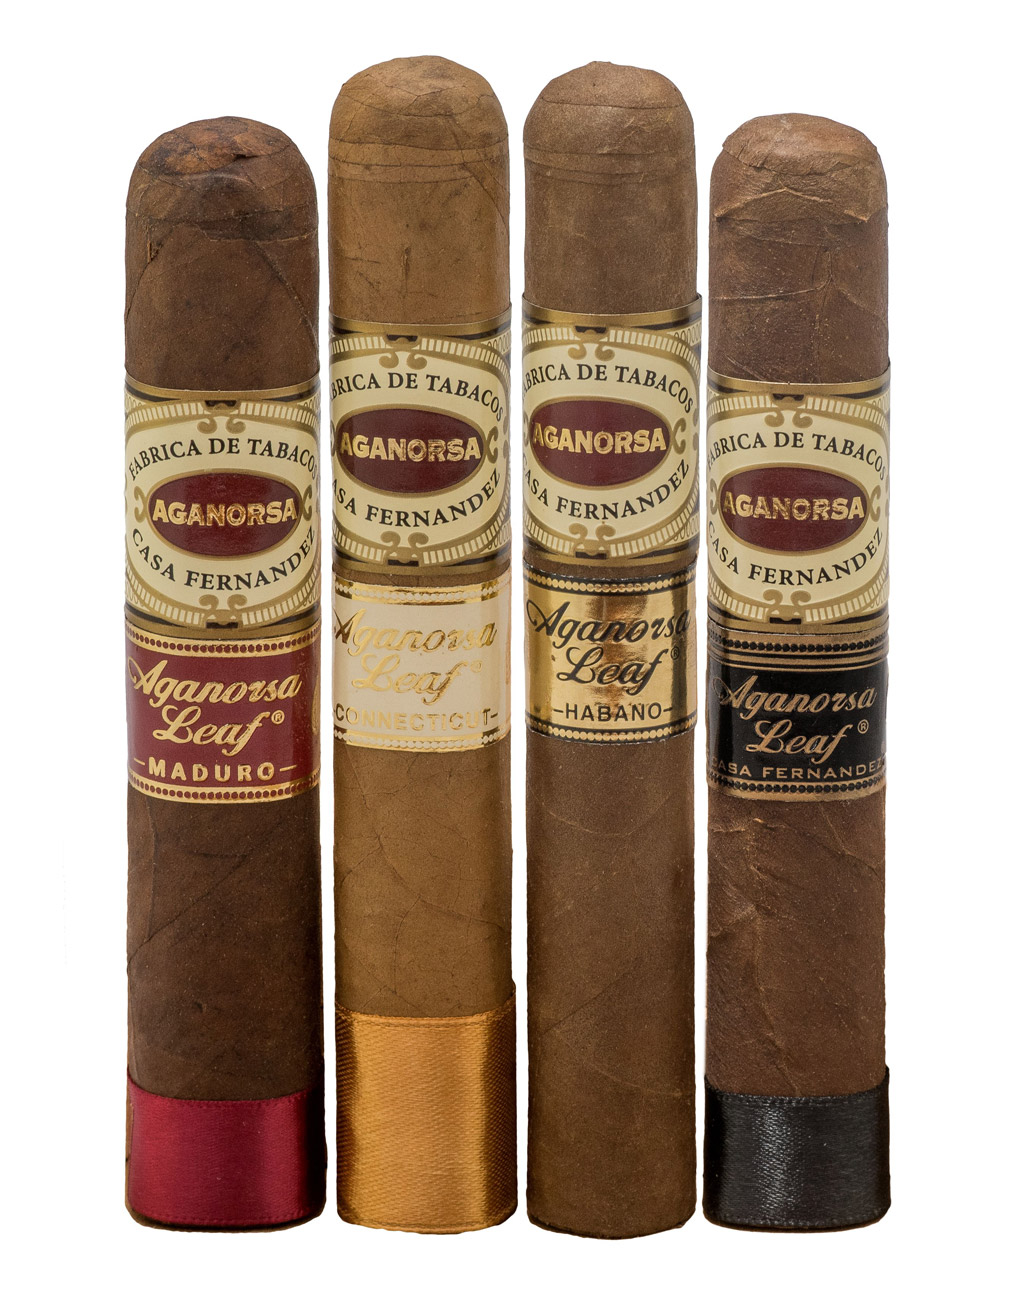 Aganorsa Leaf cigars lineup